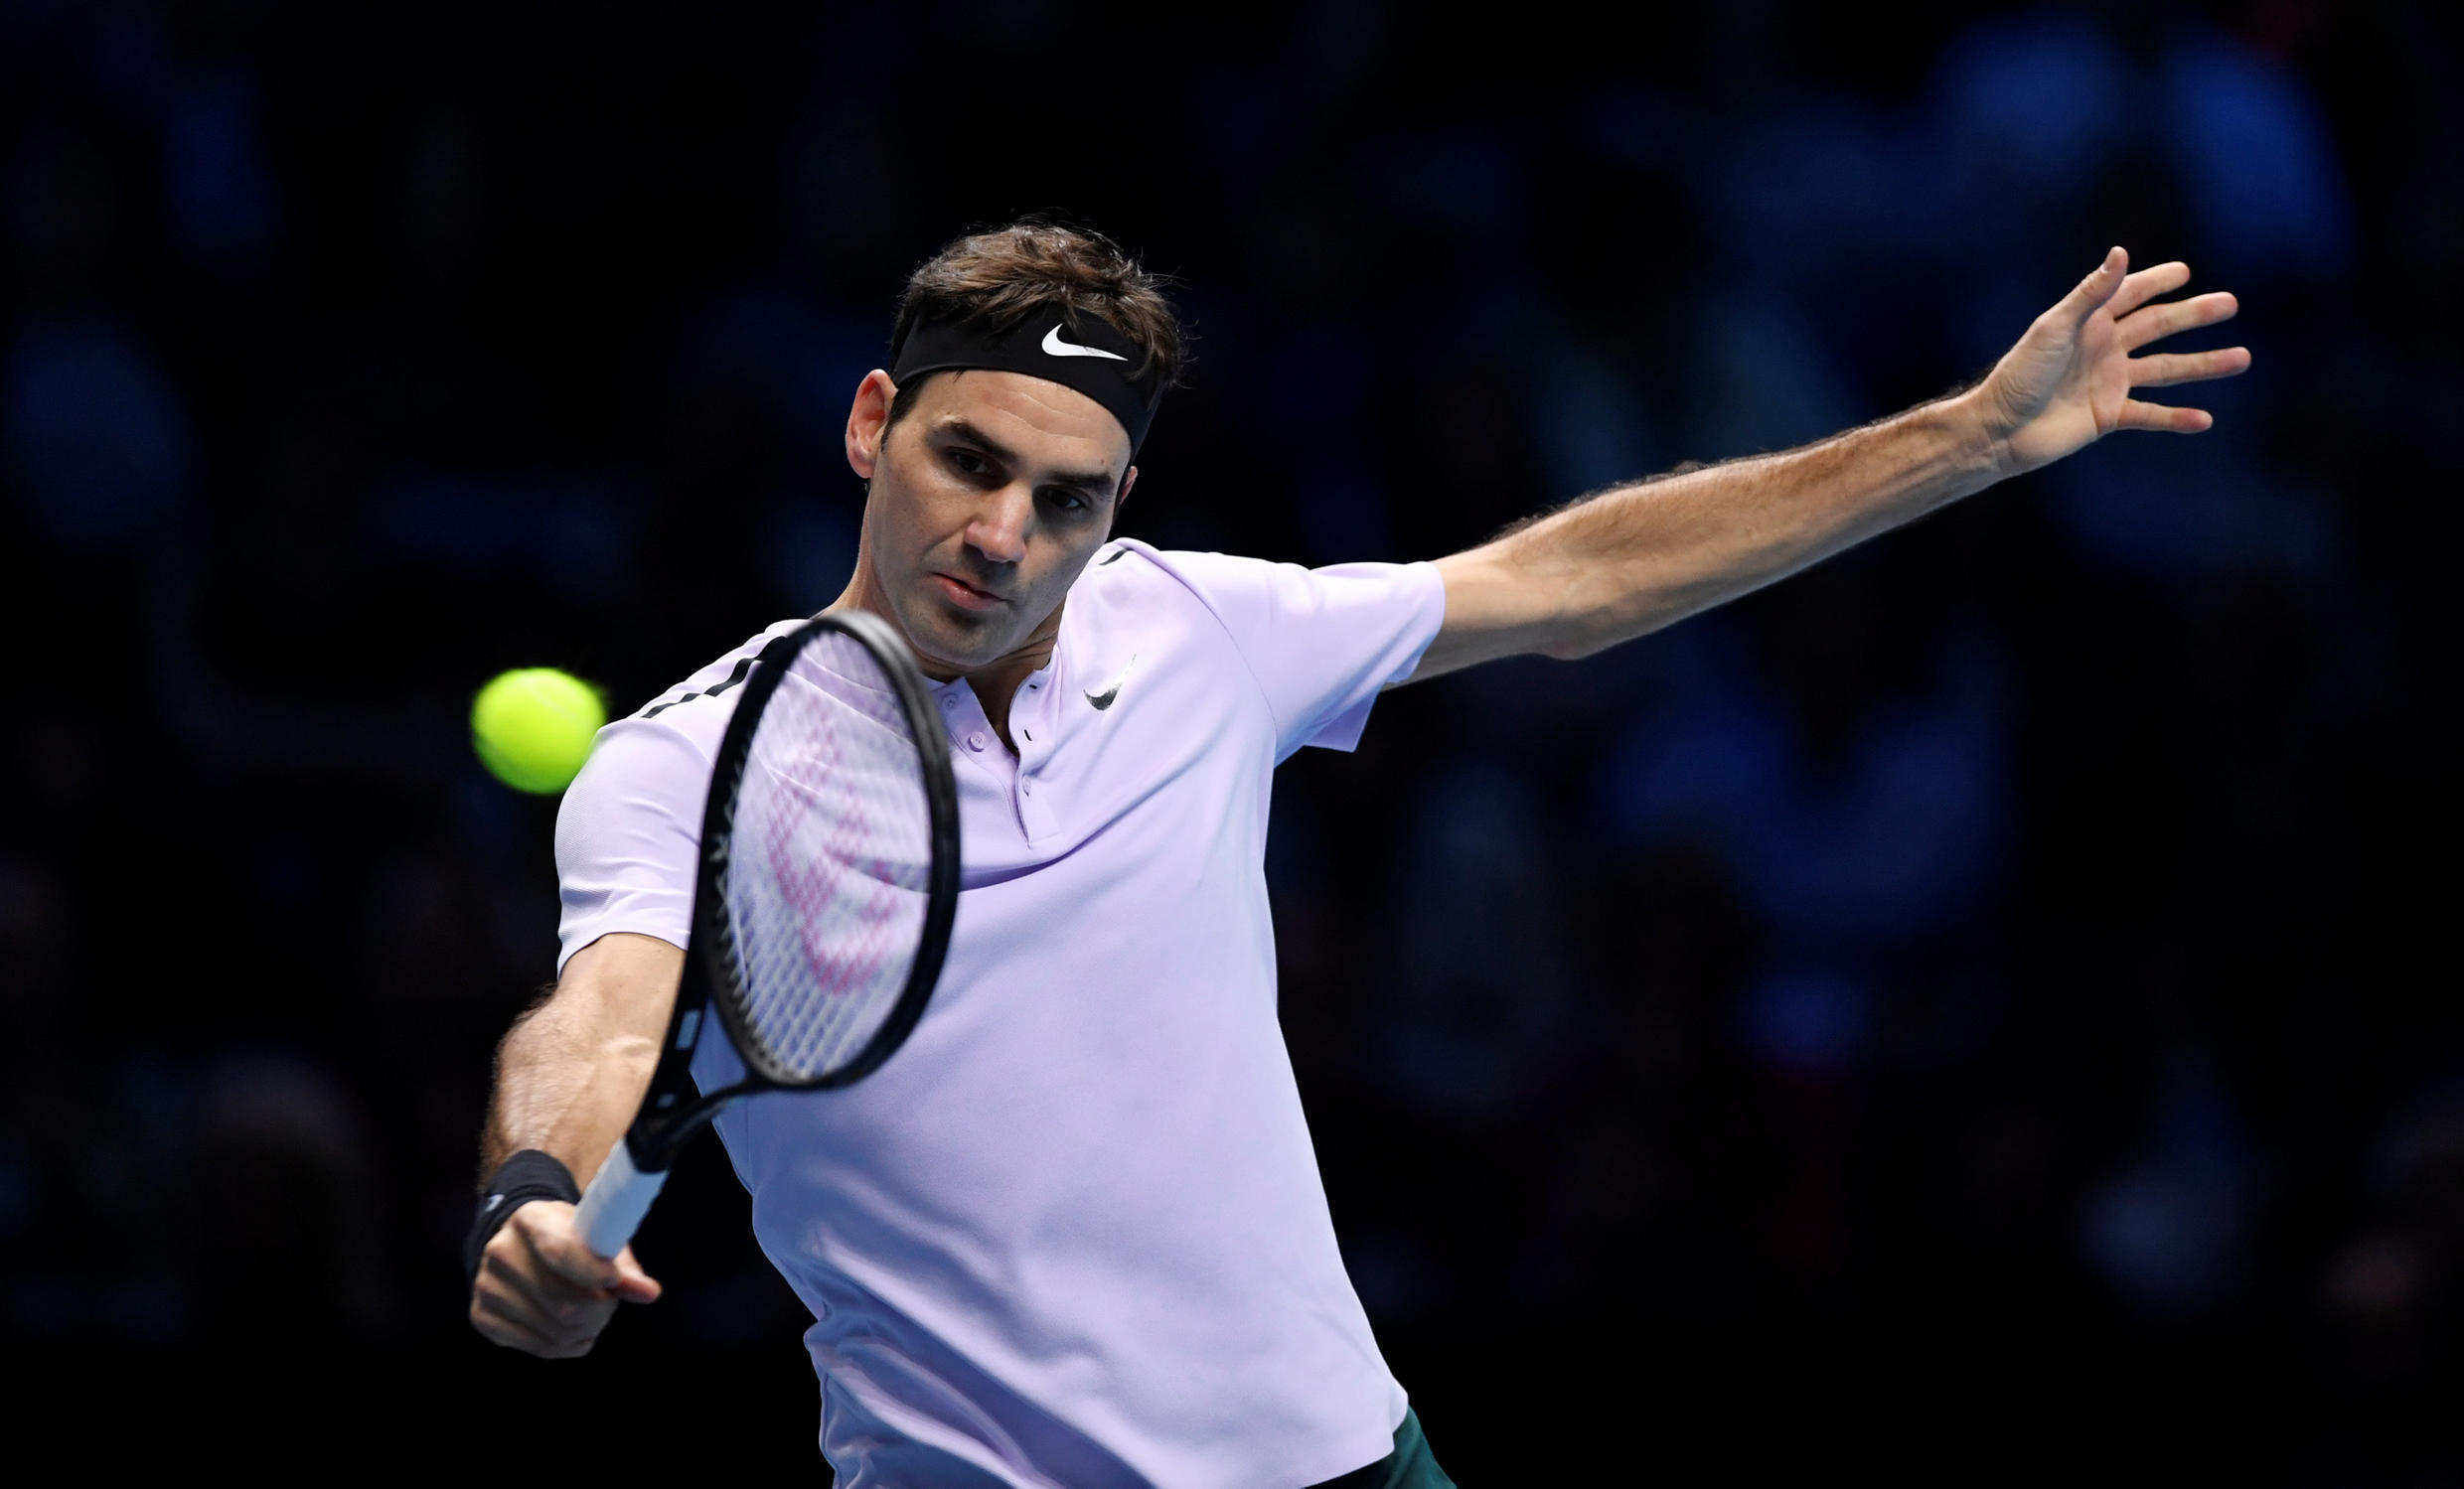 Roger Federer is trying to win the end of season championships for a record seventh time.